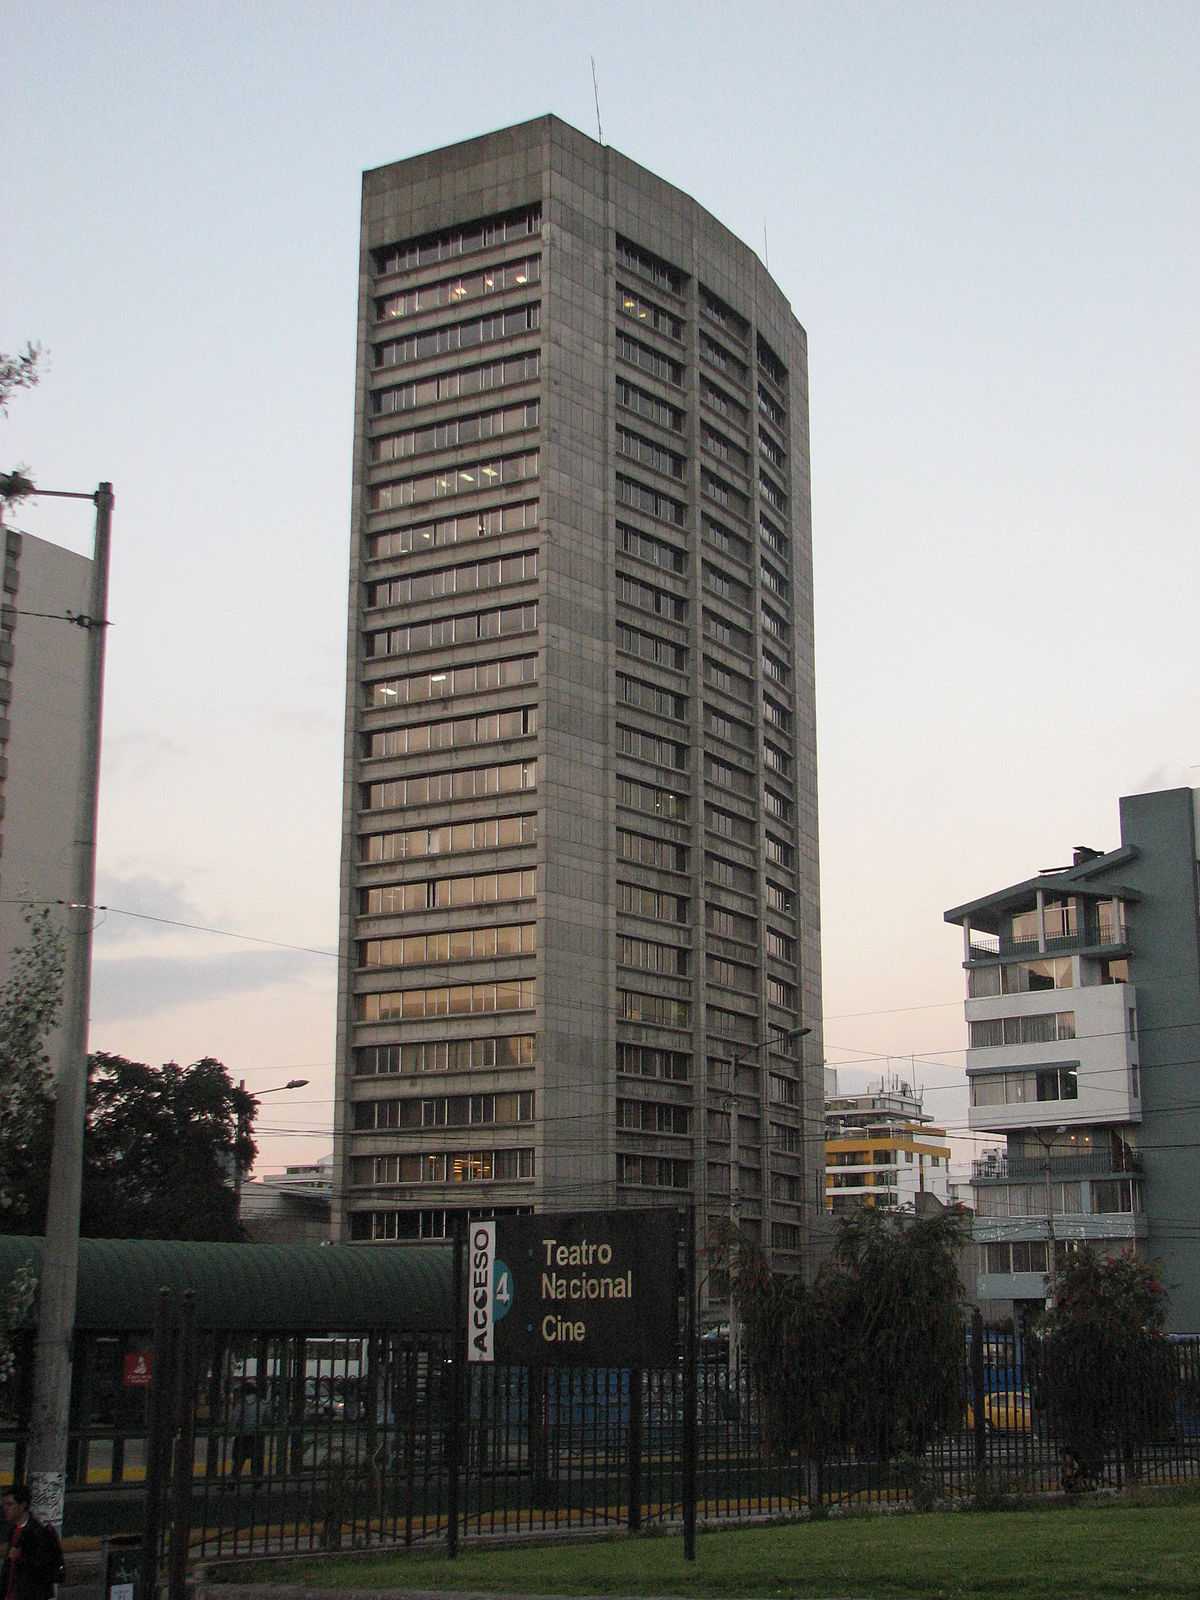 Corporaci n financiera nacional wikipedia la for Edificio puerta del sol quito